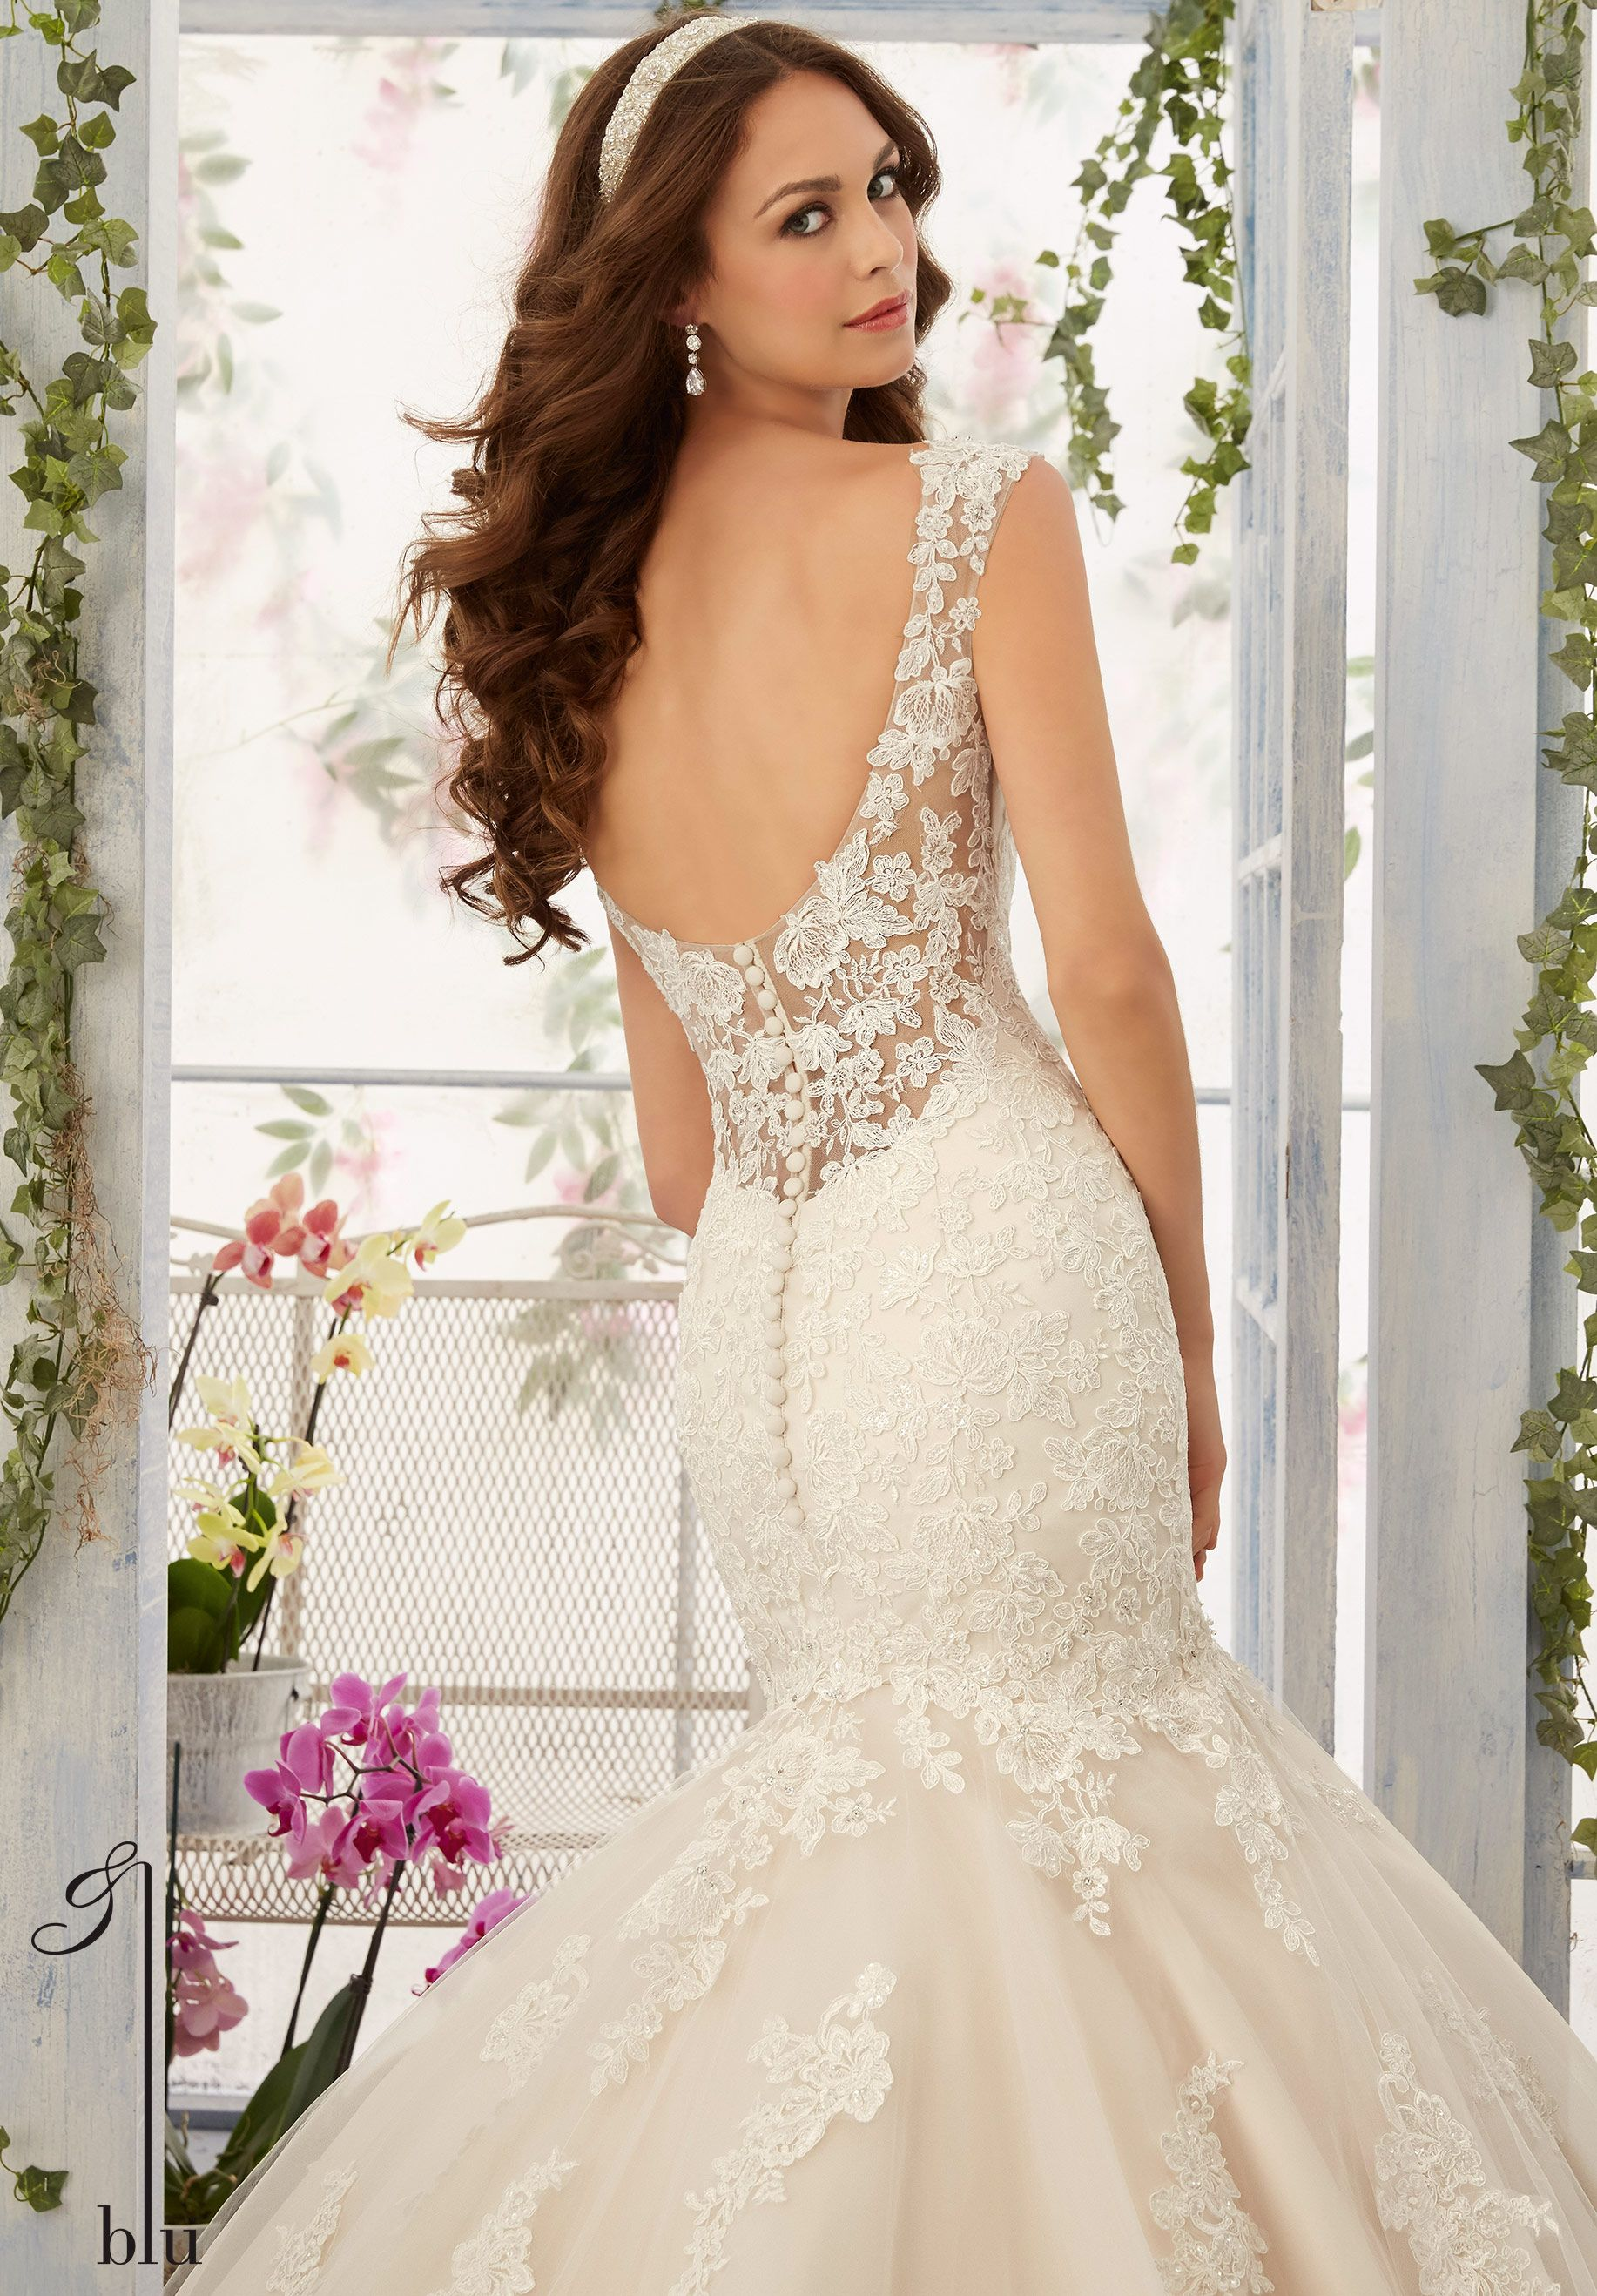 Wedding Gown 5407 Alencon Lace Appliques with Frosted Beading onto ...